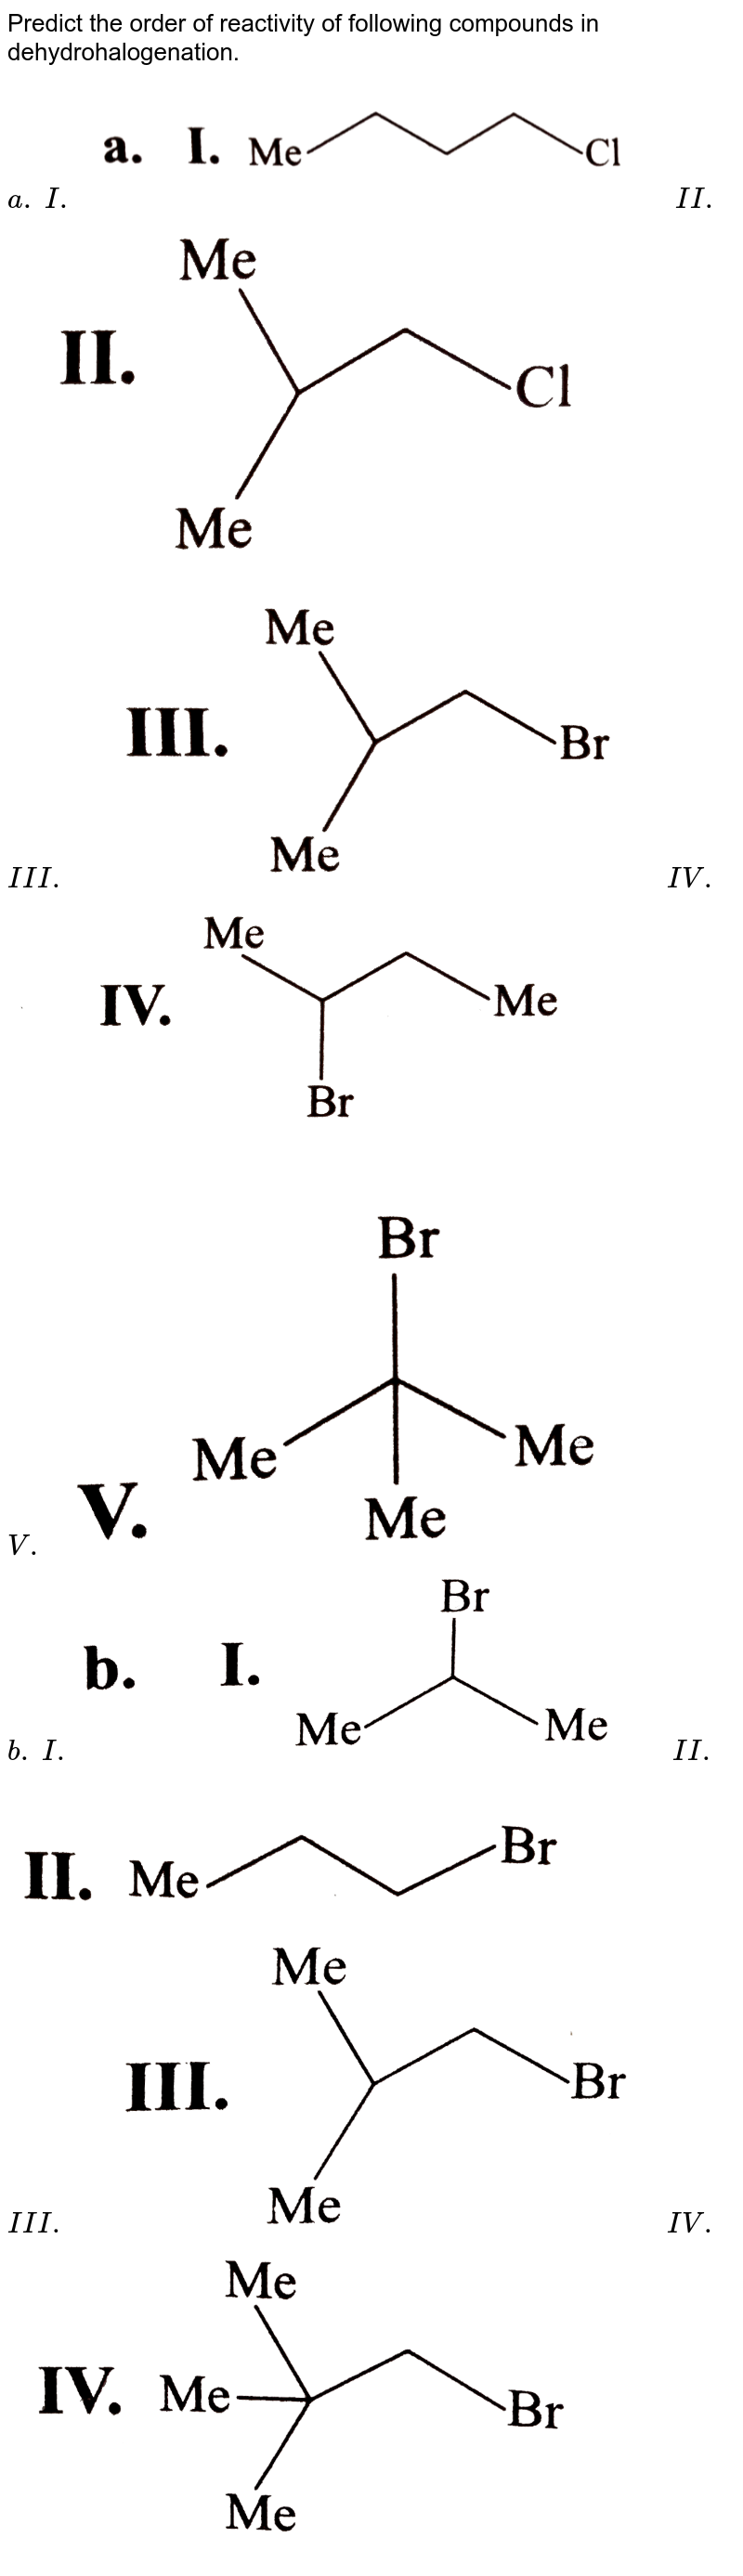 """Predict the order of reactivity of following compounds in dehydrohalogenation.  <br> `a.`  `I. `  <img src=""""https://d10lpgp6xz60nq.cloudfront.net/physics_images/KSV_ORG_P1_C07_S01_014_Q01.png"""" width=""""80%"""">  `II.`  <img src=""""https://d10lpgp6xz60nq.cloudfront.net/physics_images/KSV_ORG_P1_C07_S01_014_Q02.png"""" width=""""80%""""> <br> `III.` <img src=""""https://d10lpgp6xz60nq.cloudfront.net/physics_images/KSV_ORG_P1_C07_S01_014_Q03.png"""" width=""""80%"""">  `IV.`  <img src=""""https://d10lpgp6xz60nq.cloudfront.net/physics_images/KSV_ORG_P1_C07_S01_014_Q04.png"""" width=""""80%"""">  <br> `V.` <img src=""""https://d10lpgp6xz60nq.cloudfront.net/physics_images/KSV_ORG_P1_C07_S01_014_Q05.png"""" width=""""80%""""> <br> `b.` `I.`  <img src=""""https://d10lpgp6xz60nq.cloudfront.net/physics_images/KSV_ORG_P1_C07_S01_014_Q06.png"""" width=""""80%"""">   `II.` <img src=""""https://d10lpgp6xz60nq.cloudfront.net/physics_images/KSV_ORG_P1_C07_S01_014_Q07.png"""" width=""""80%"""">  <br> `III.` <img src=""""https://d10lpgp6xz60nq.cloudfront.net/physics_images/KSV_ORG_P1_C07_S01_014_Q08.png"""" width=""""80%"""">   `IV.`  <img src=""""https://d10lpgp6xz60nq.cloudfront.net/physics_images/KSV_ORG_P1_C07_S01_014_Q09.png"""" width=""""80%"""">"""